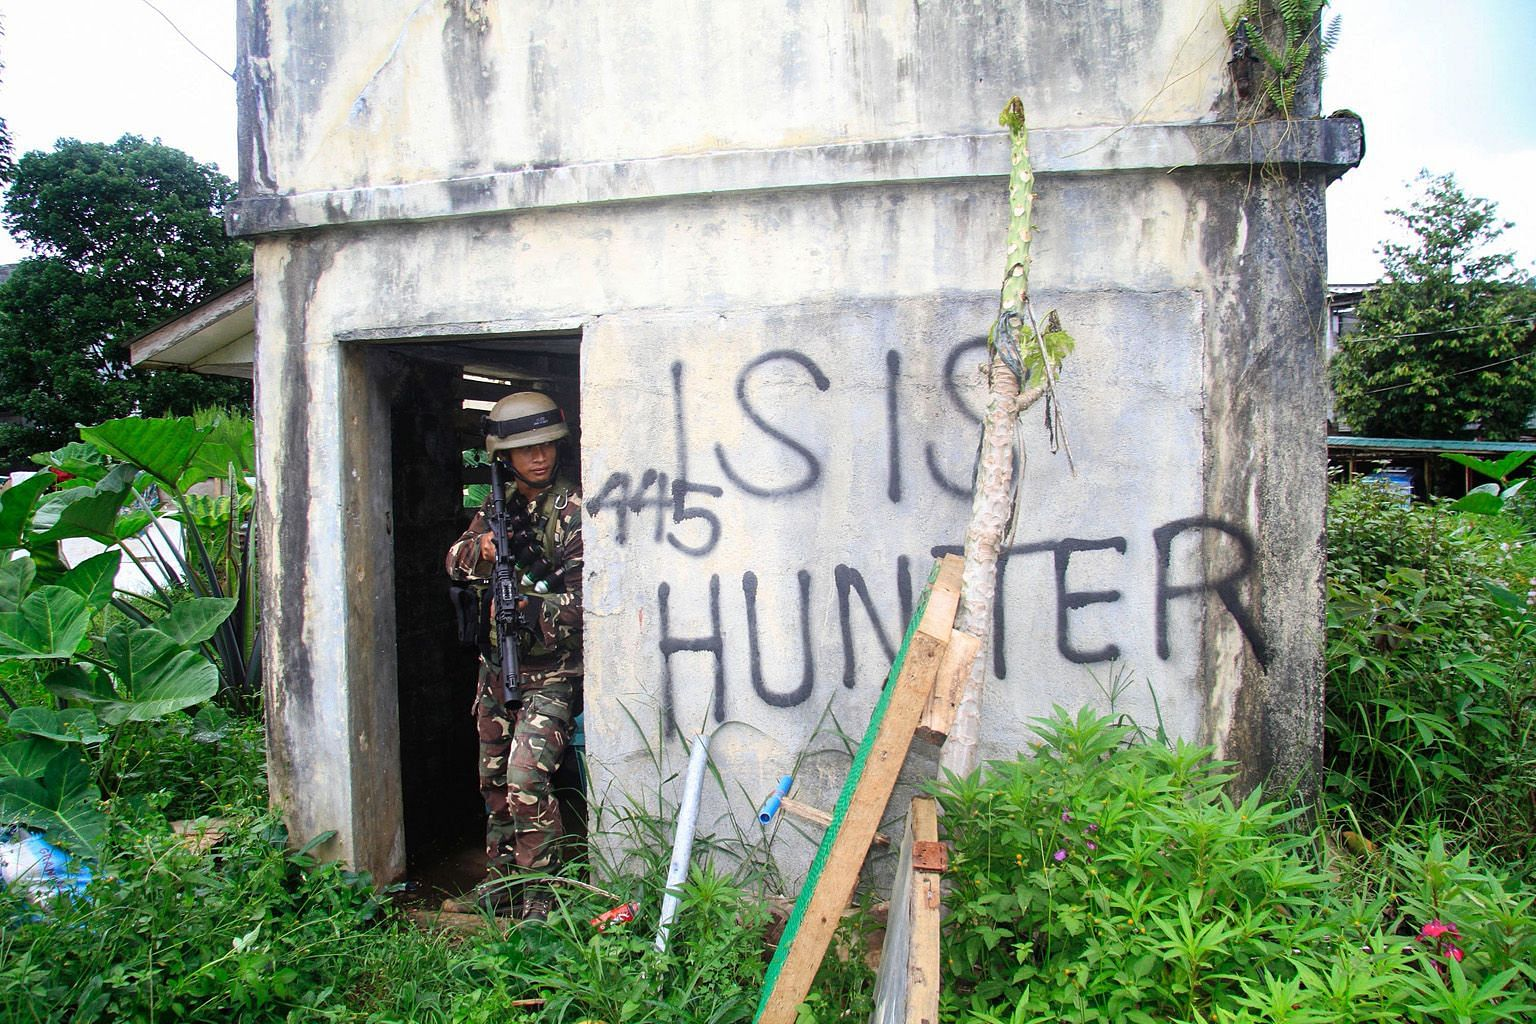 A Philippine soldier taking cover during the Marawi siege. Even as ISIS' footprint shrinks in Iraq and Syria, it is making inroads to existing and emerging conflict zones, including Asia. Extremists continue to travel to South-east Asia to join ISIS-